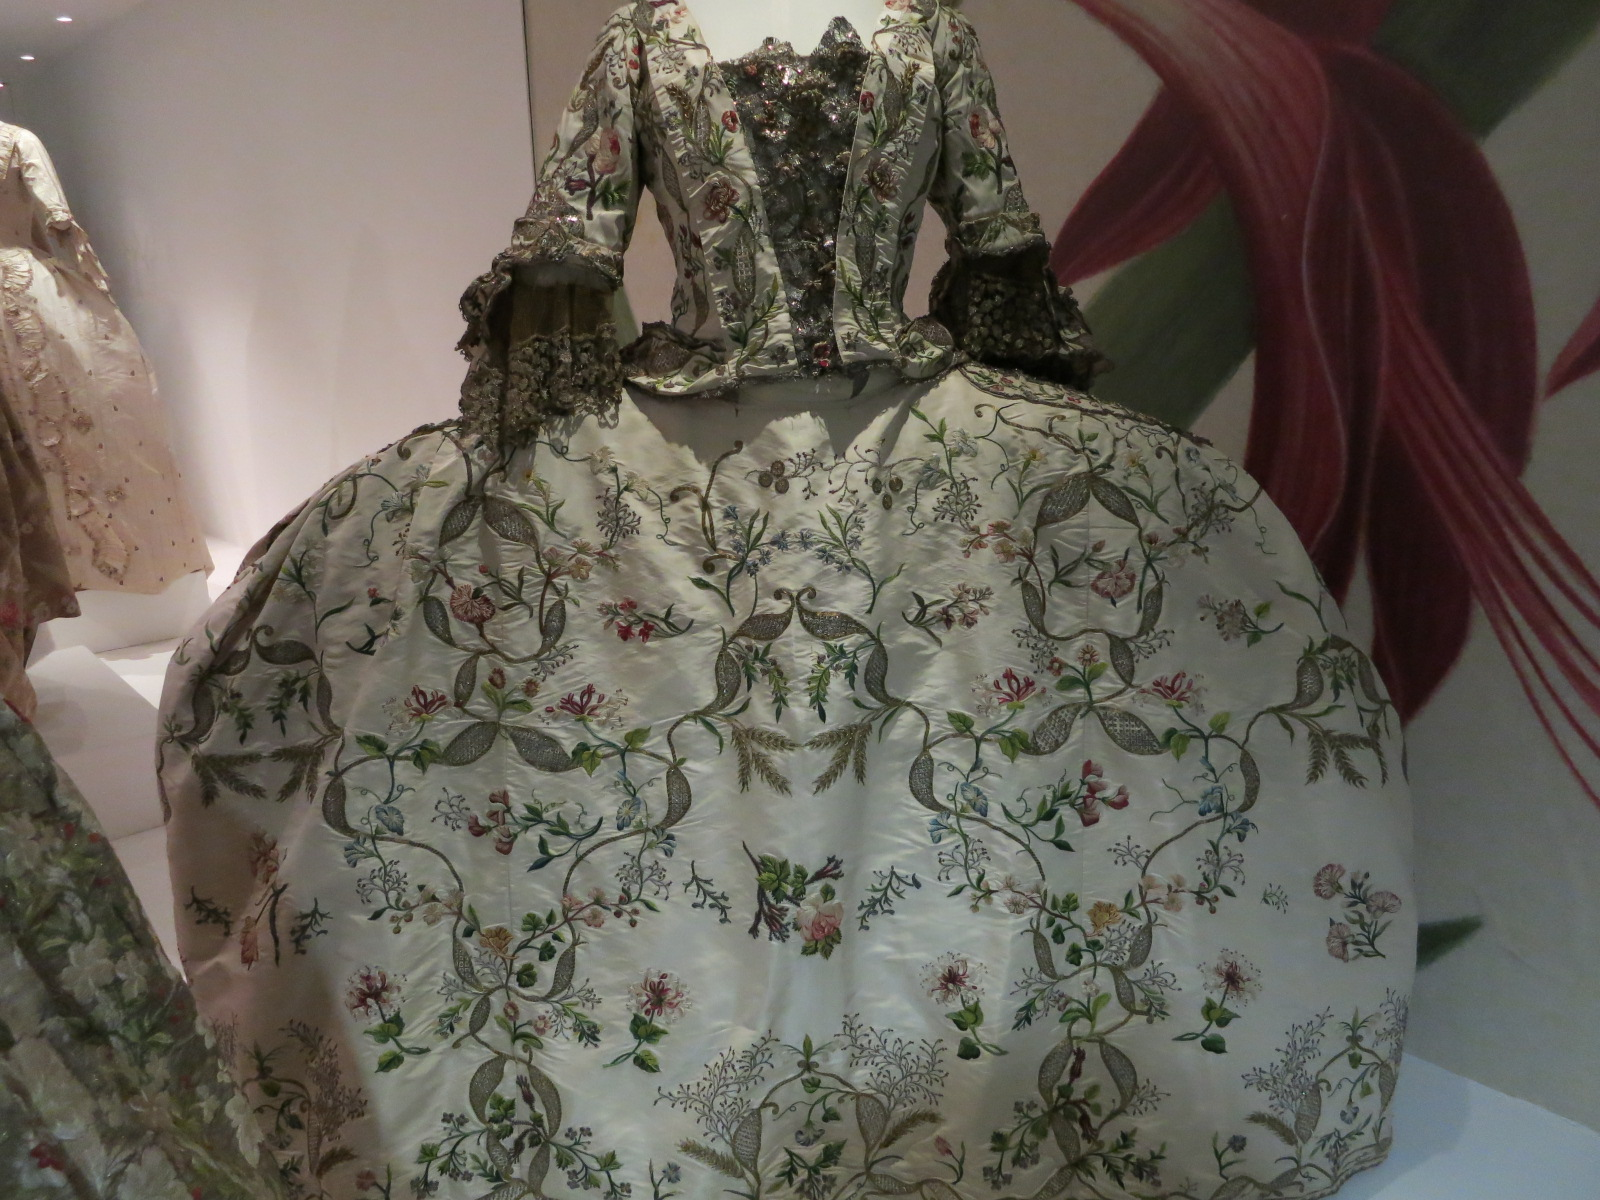 'Georgians: Dress for Polite Society' exhibition at Bath Museum, UK 2015